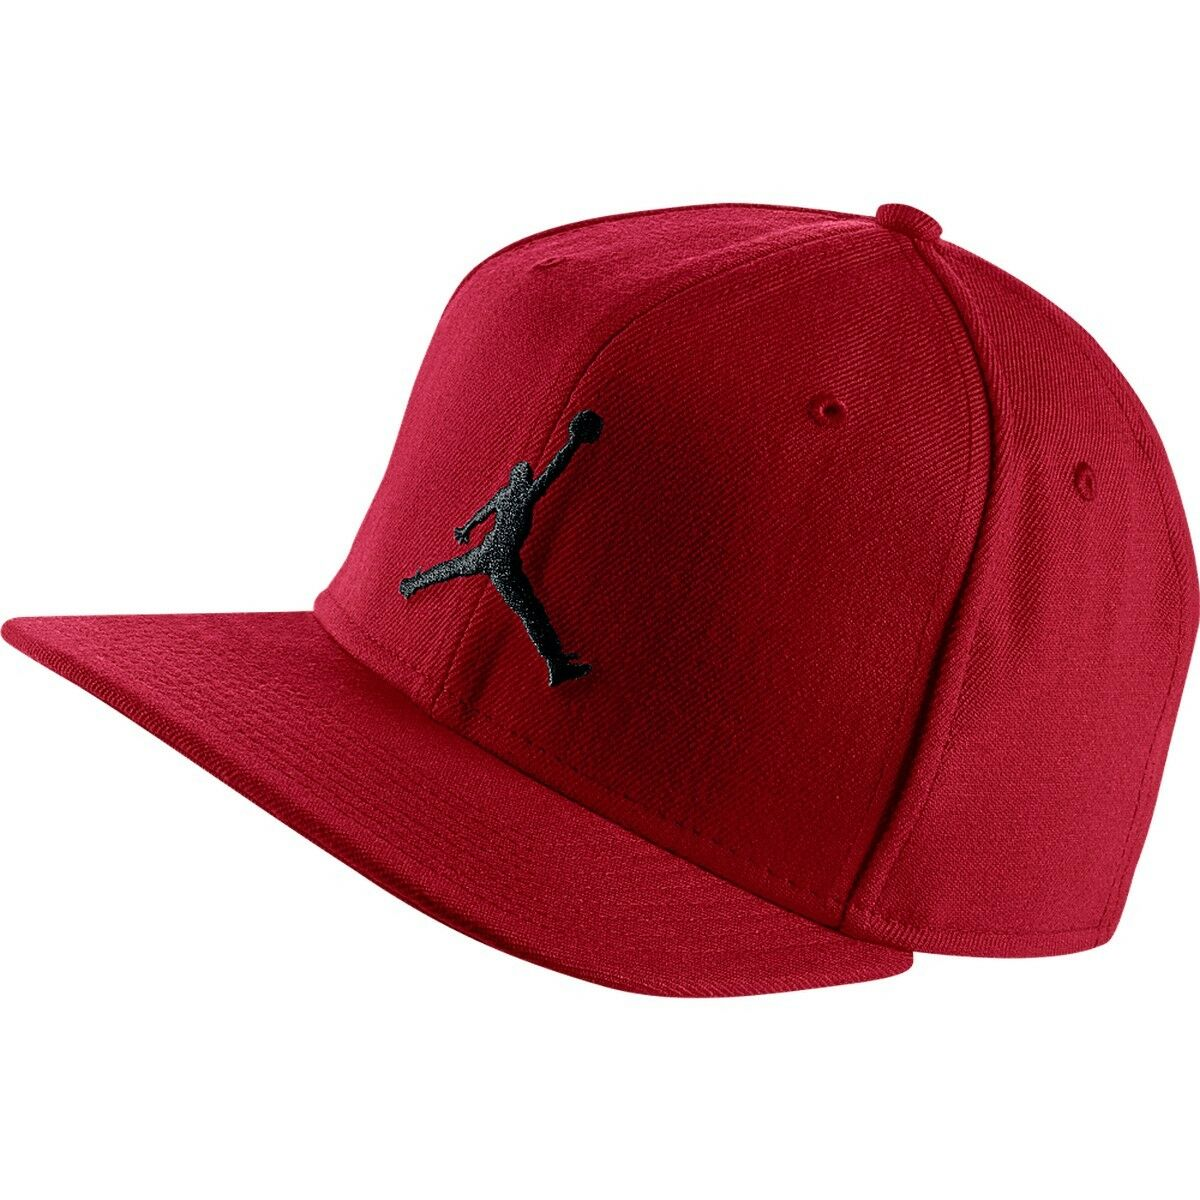 c627bfbe6e8 ... best price nwt nike air jordan jumpman fitted 7 cap hat sizes 8 7  fitted model